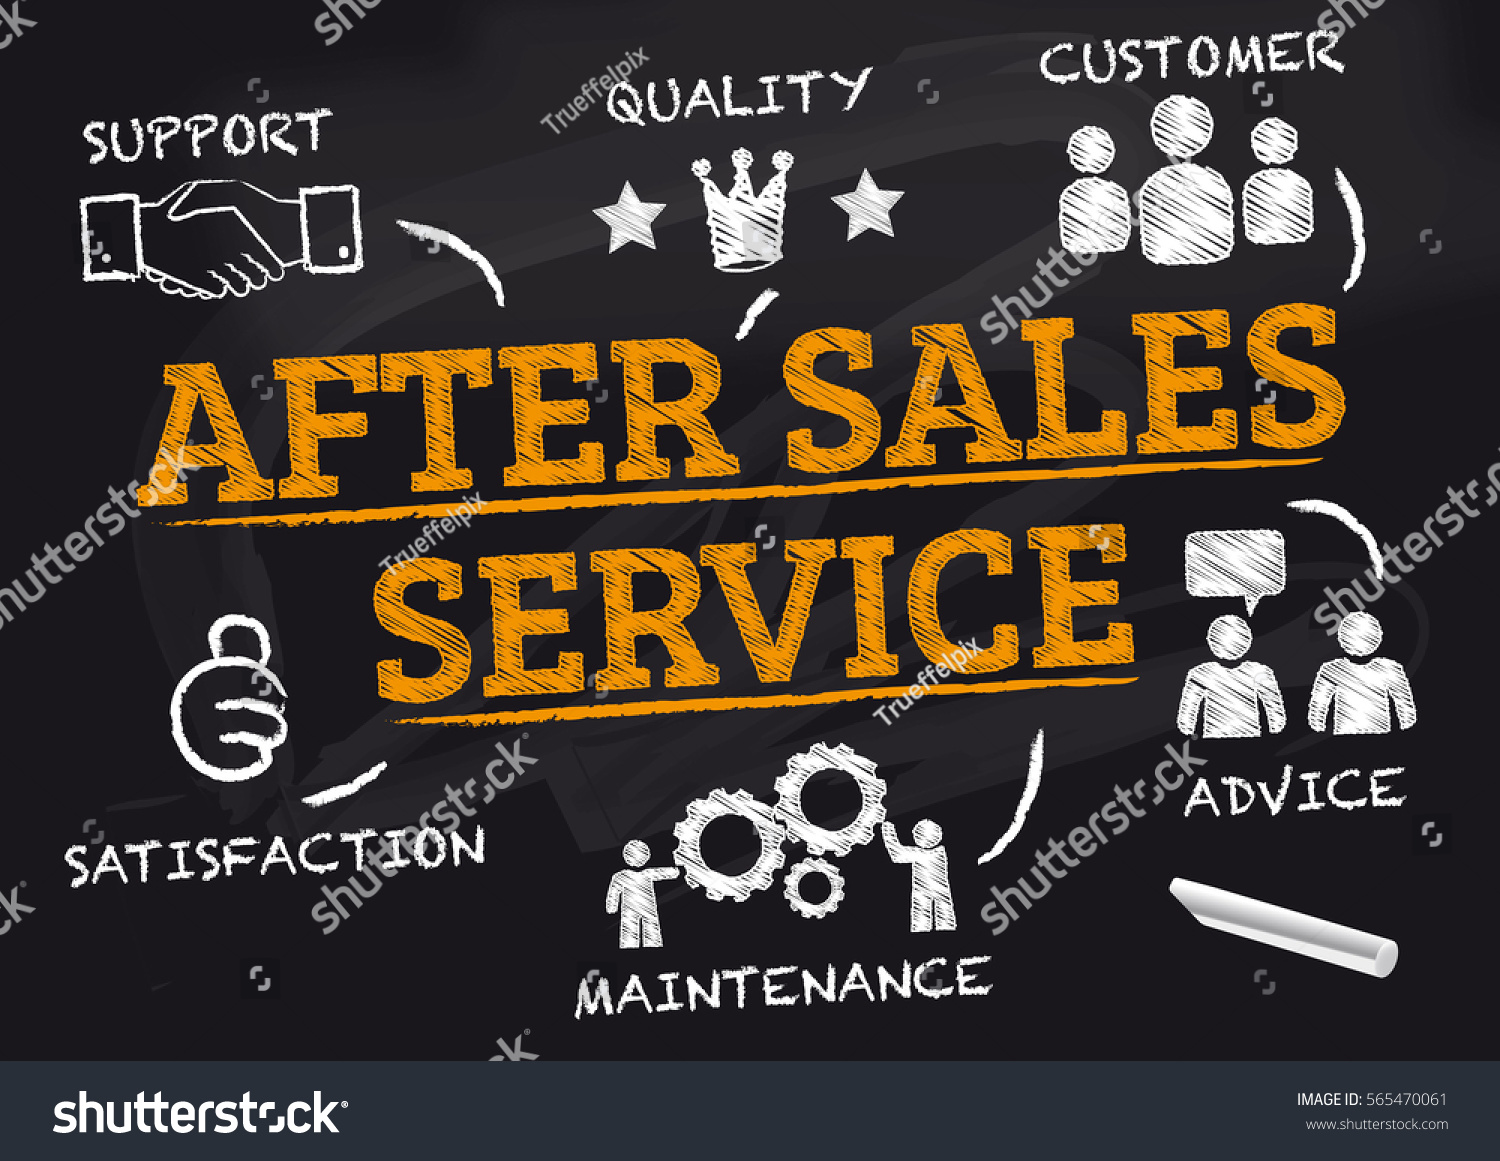 After Sales Service - Blackboard with Text and icon